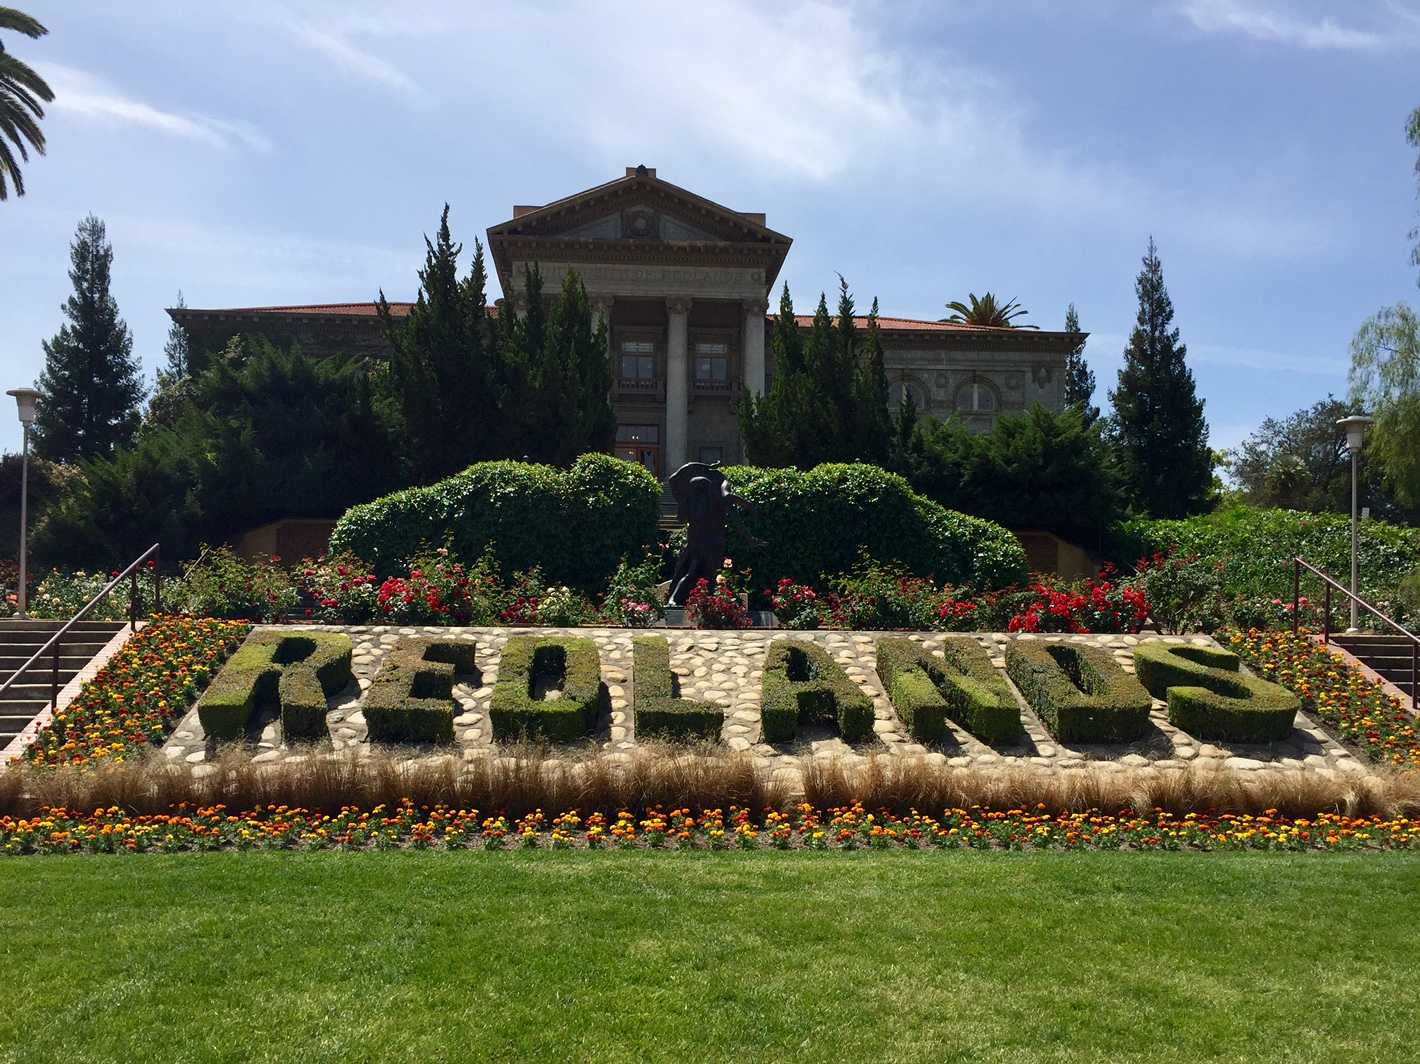 Not only does the University of Redlands have beautiful architectural buildings throughout campus, but they've done a lovely job with their floral landscaping as well!